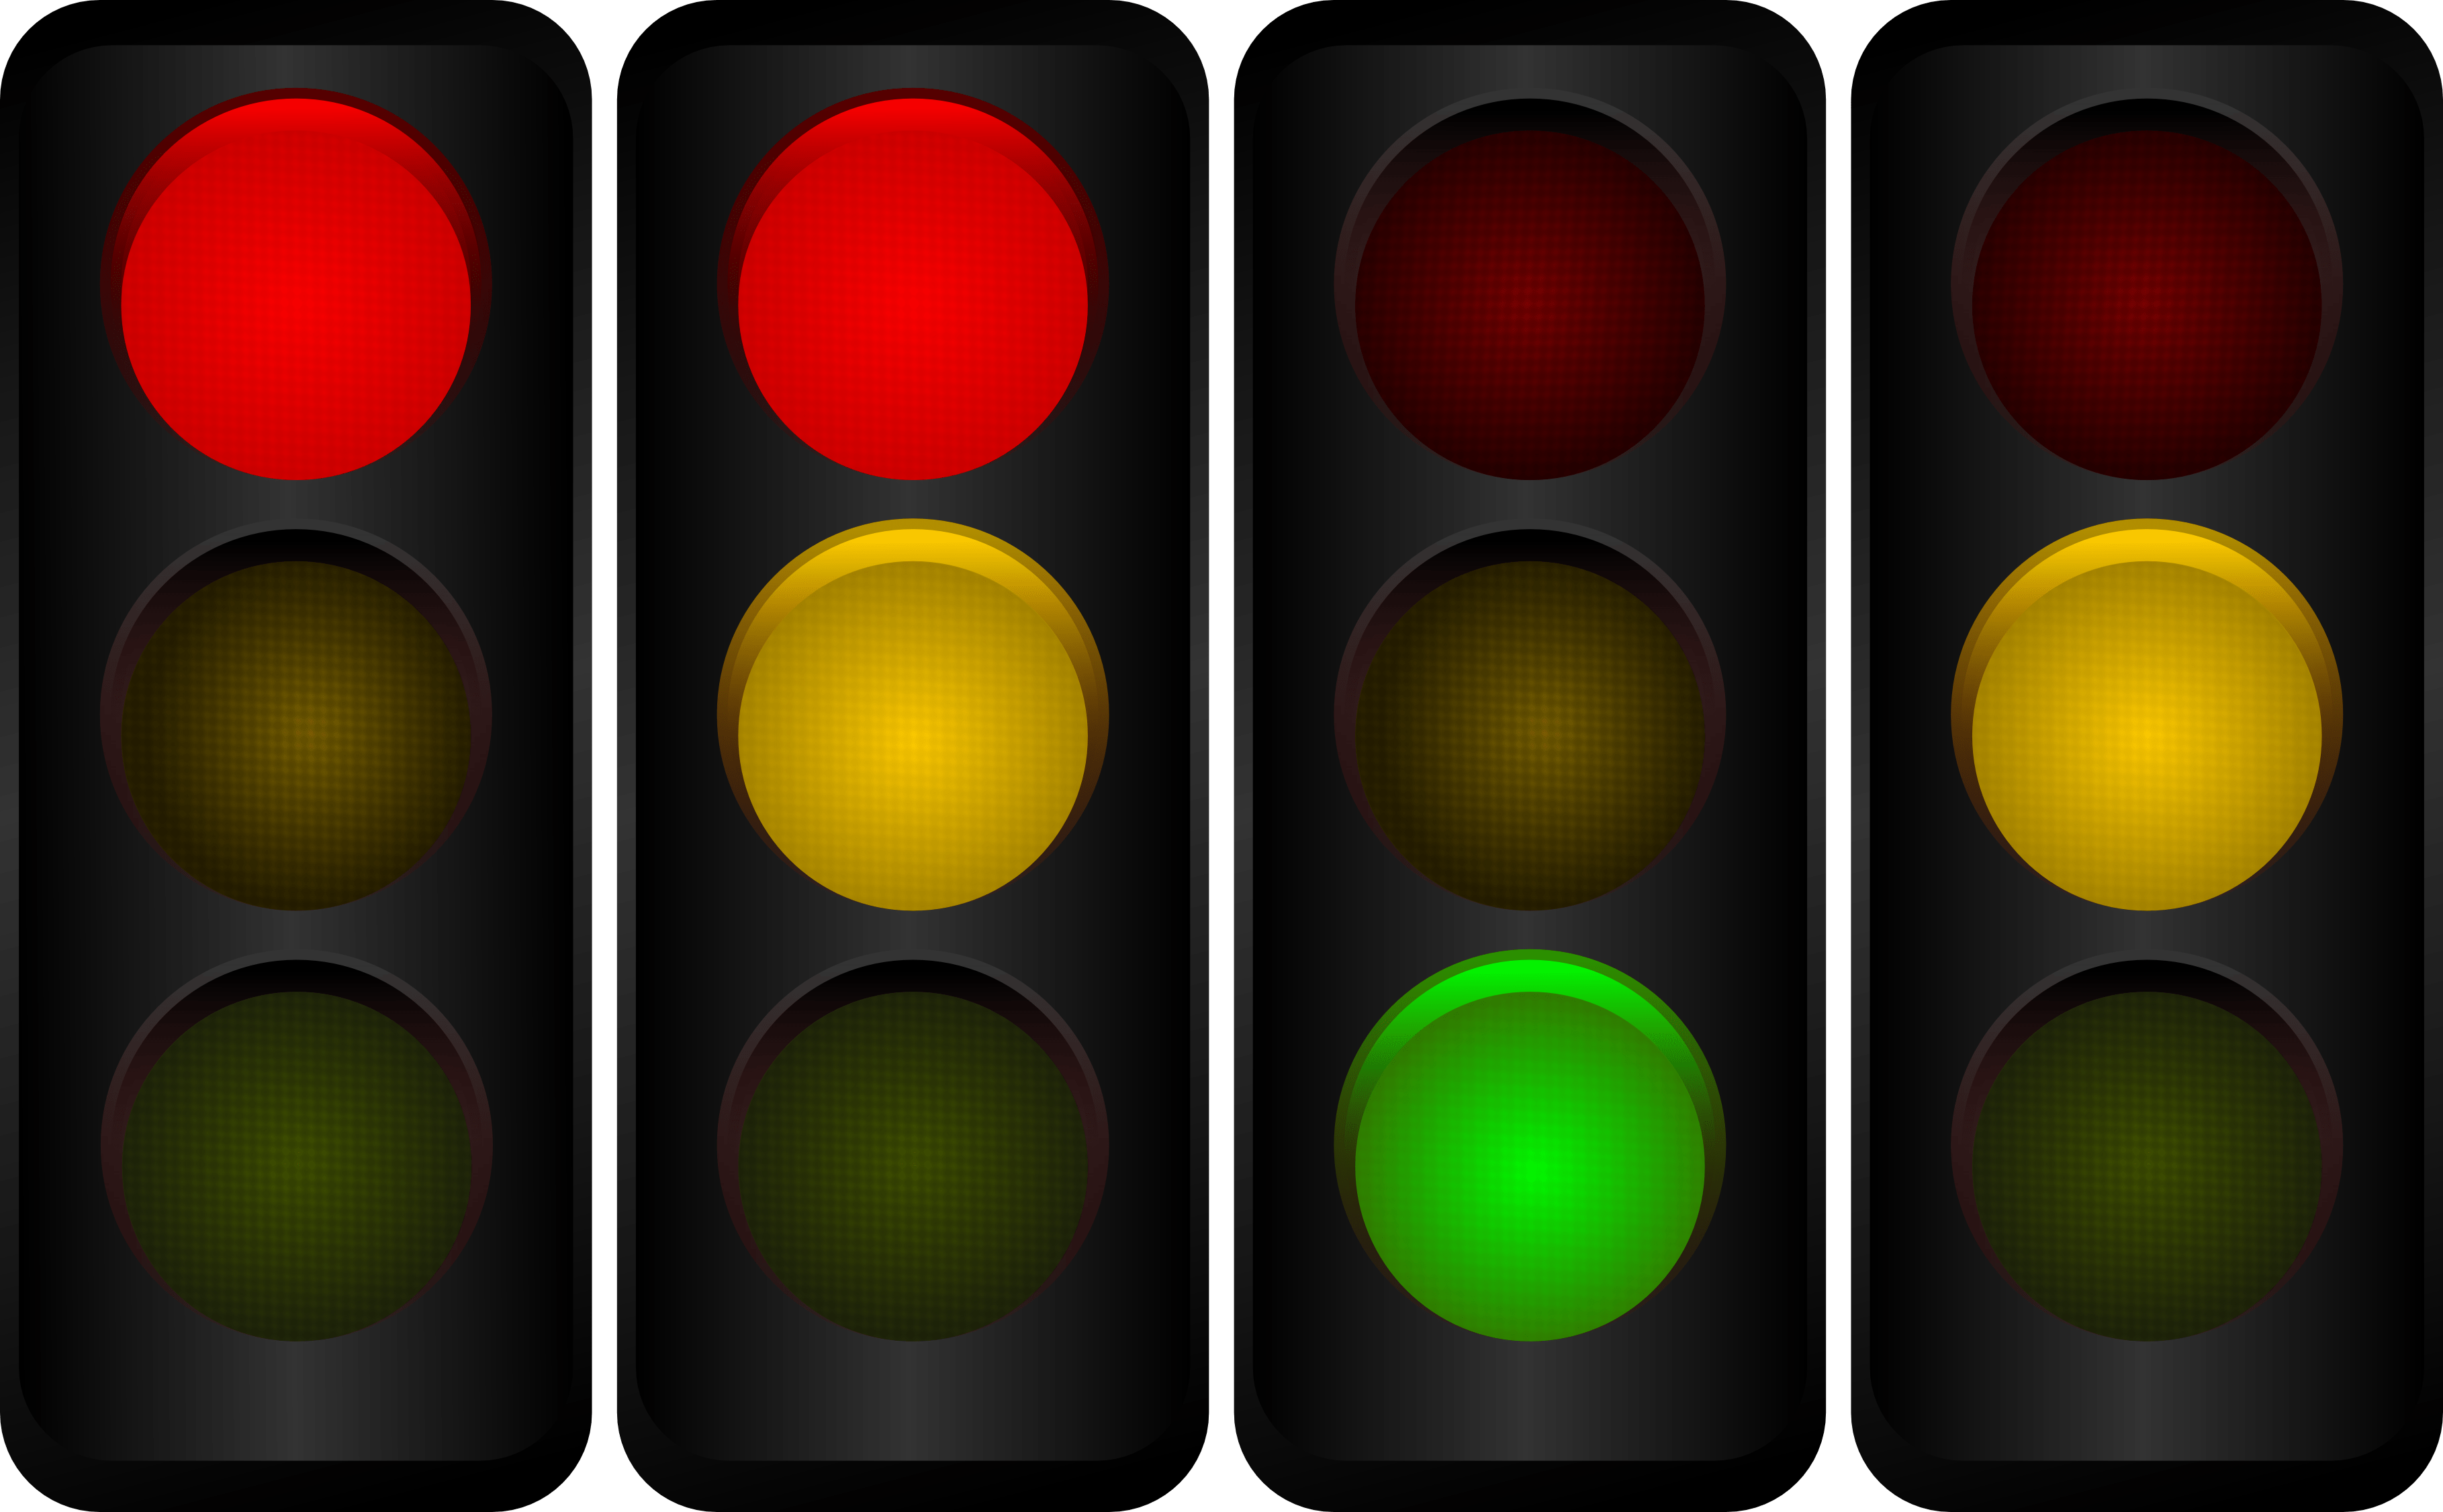 Vector Traffic Lights By Pomprint On Deviantart